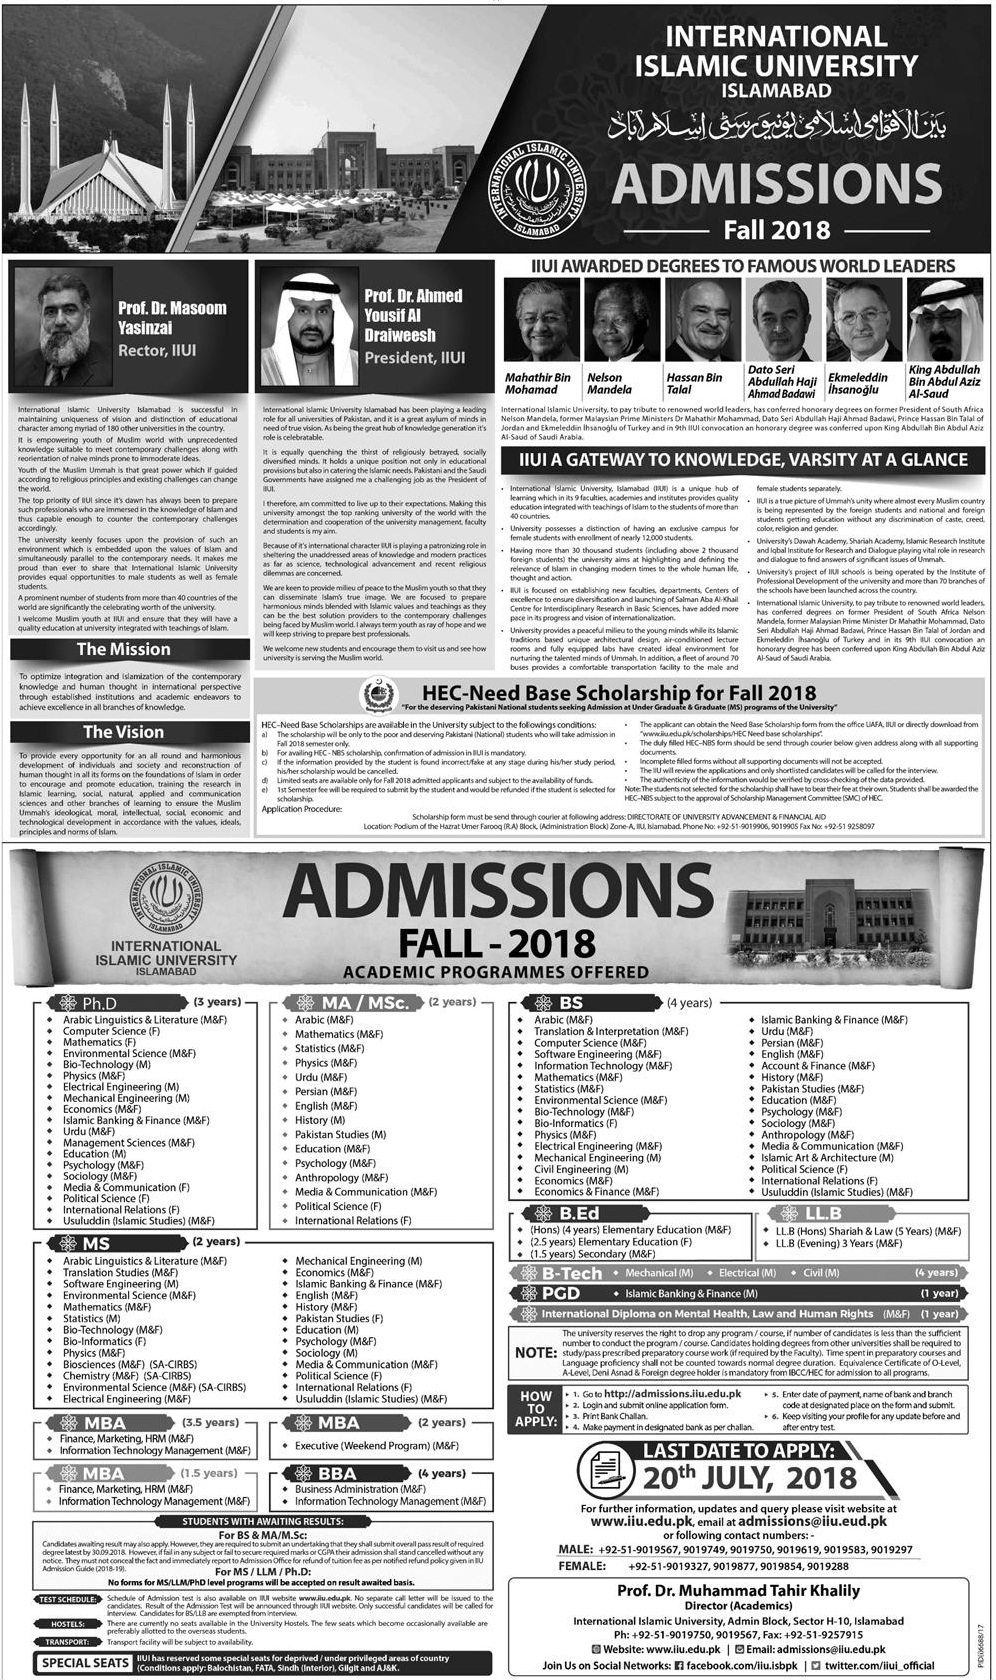 IIUI Admission Fall 2018 Download International Islamic University Admission Form